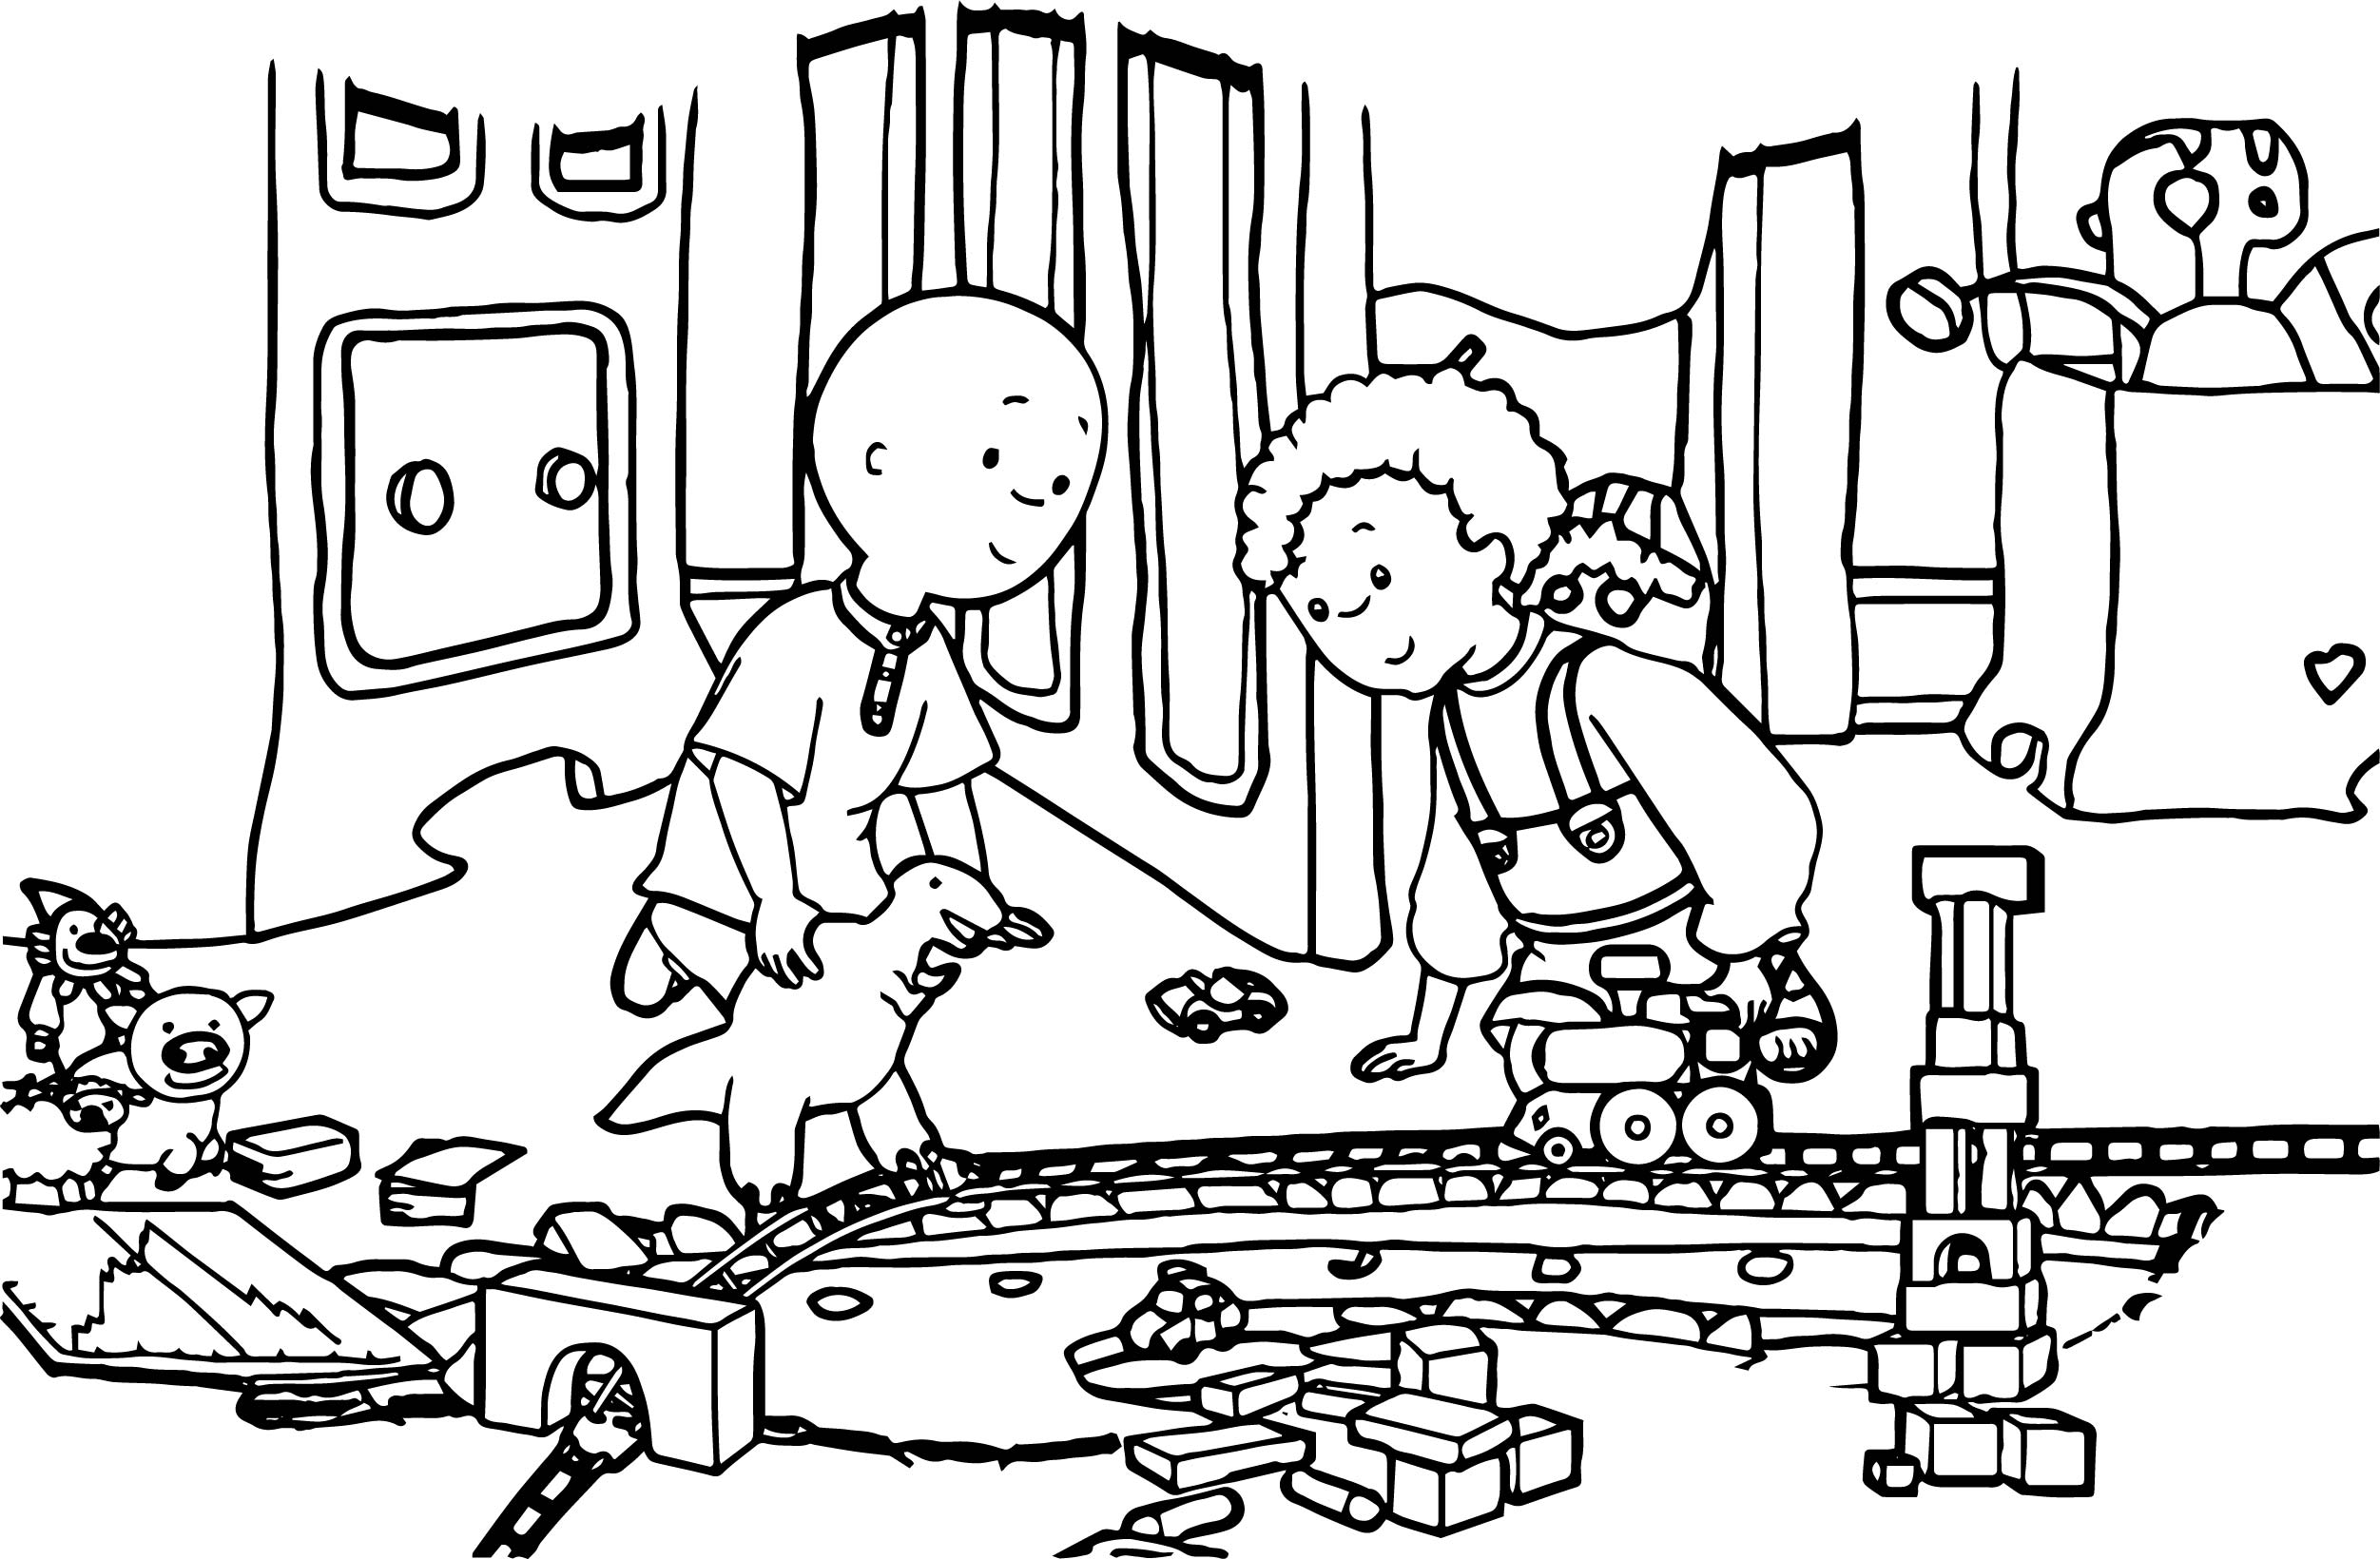 Caillou English Full Caillou Coloring Page | Wecoloringpage